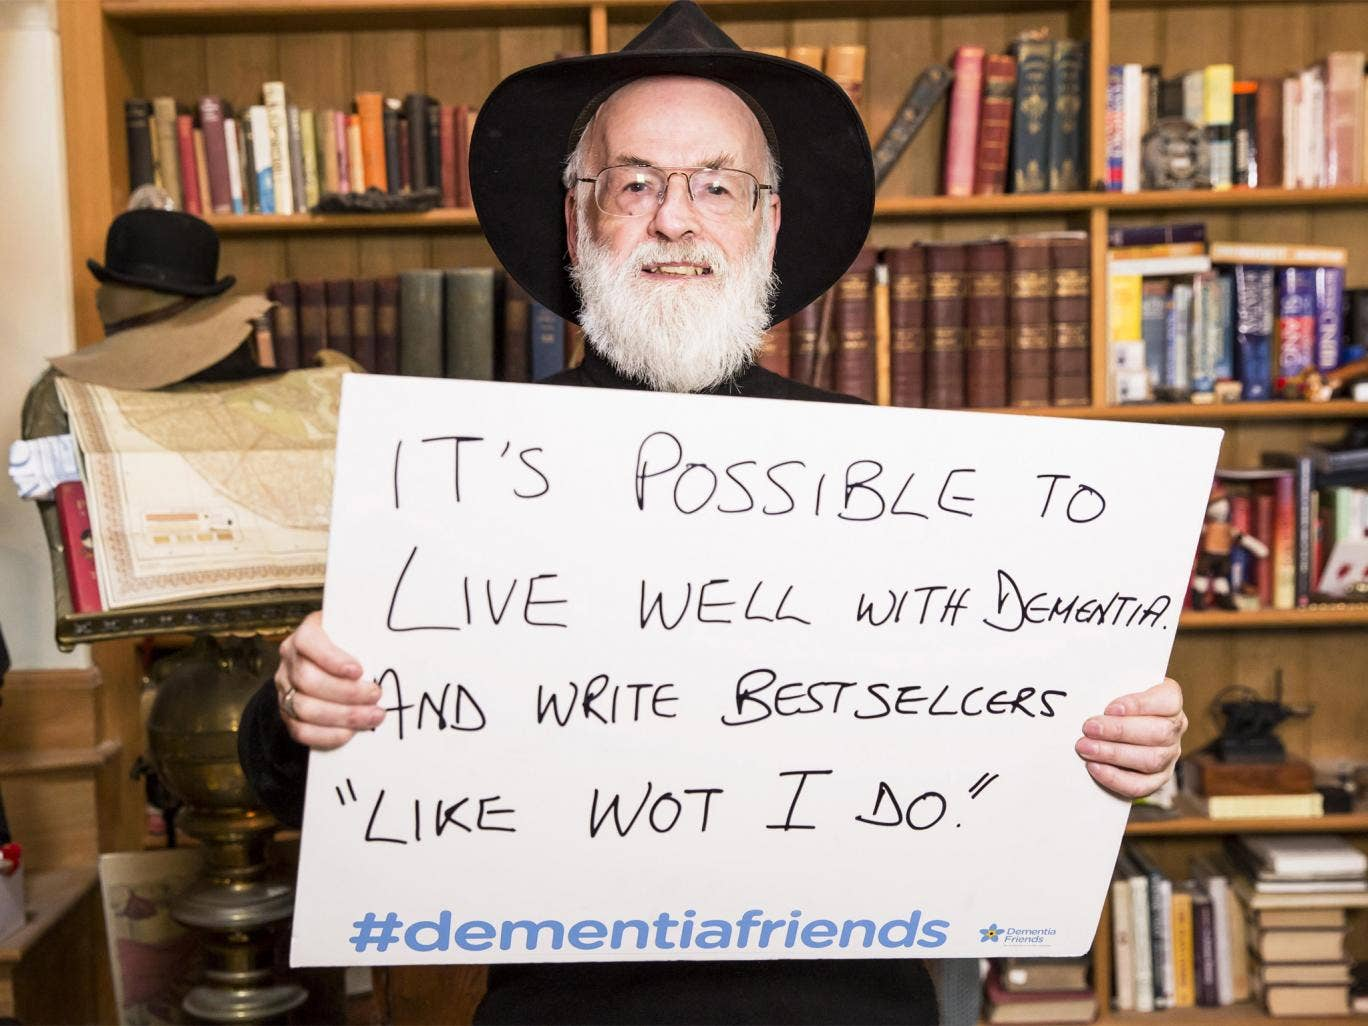 Terry Pratchett supported the Dementia Friends campaign